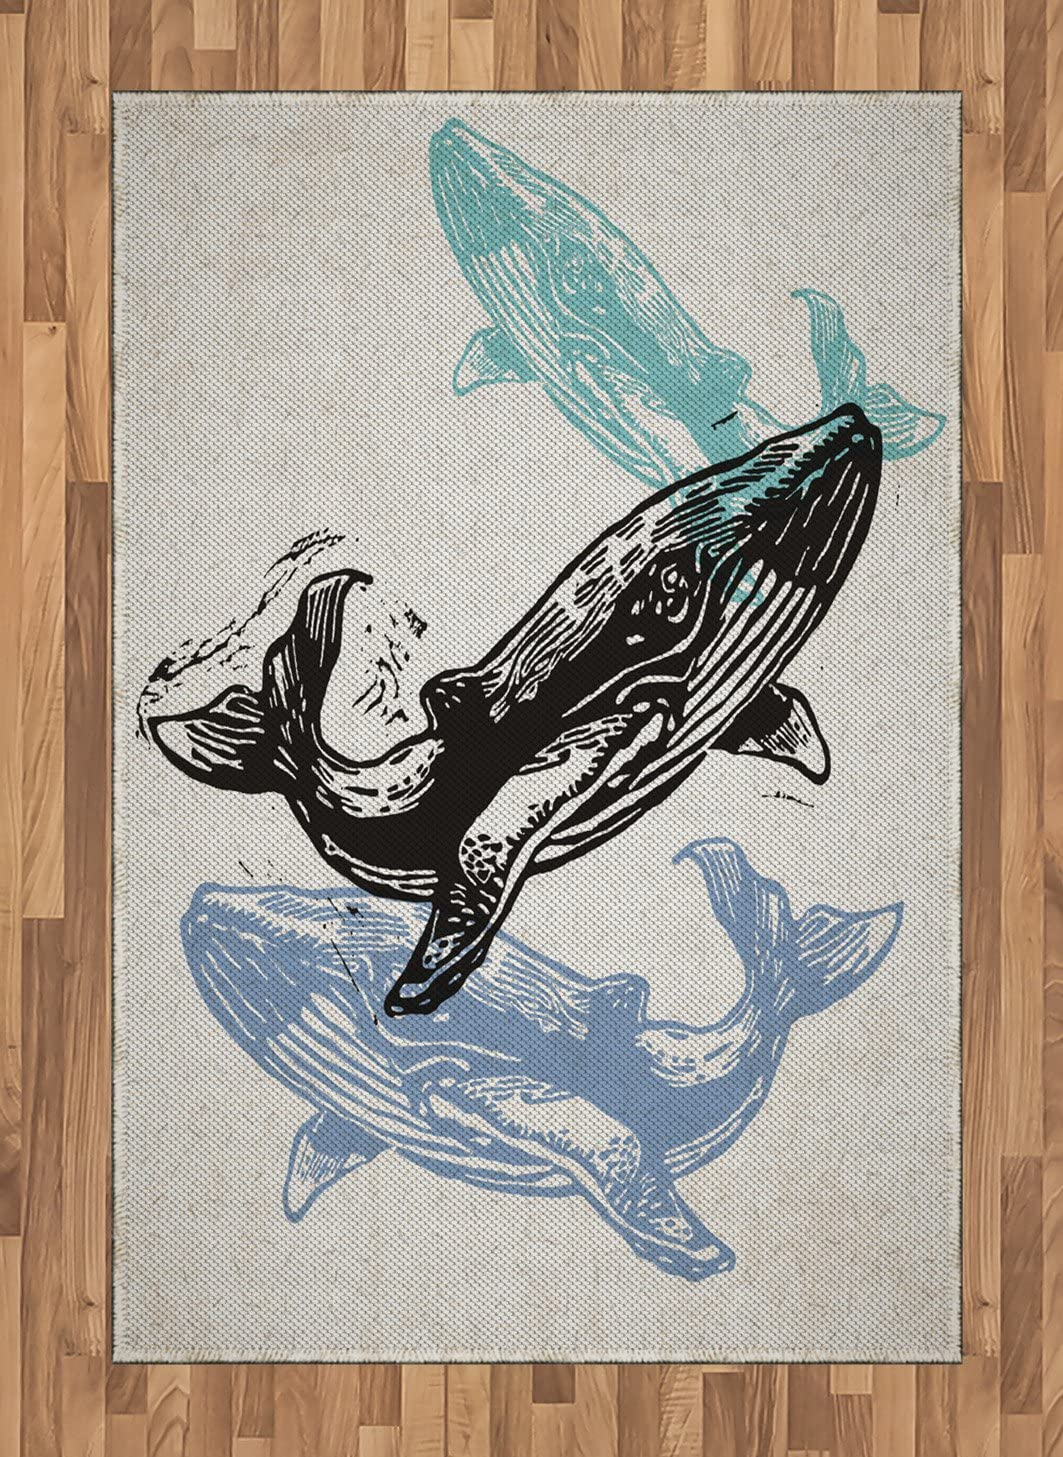 Amazon Com Lunarable Whale Area Rug Linocut Whales In Different Tones Modern Ecology Nautical Graphic Flat Woven Accent Rug For Living Room Bedroom Dining Room 4 X 5 7 Beige Blue Teal Black Kitchen